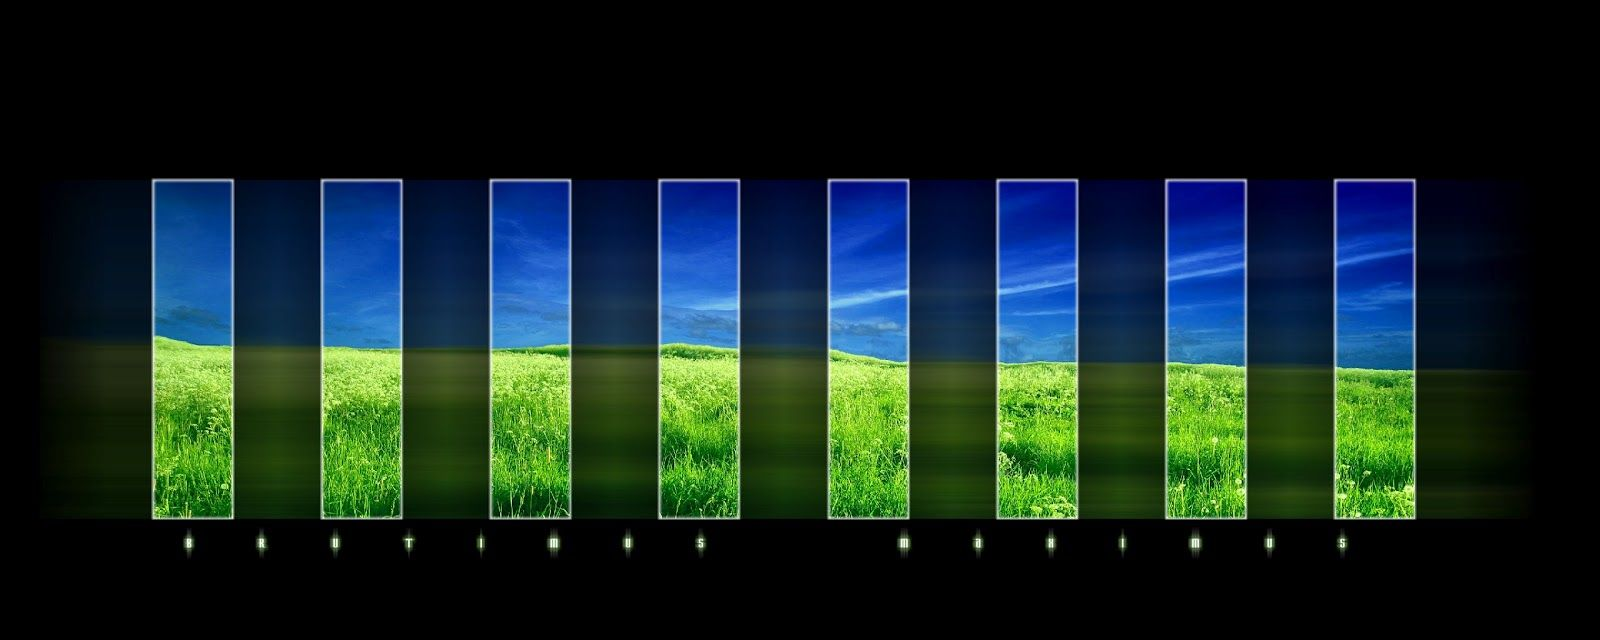 Windows 7 How Do I Get Different Background Images On My